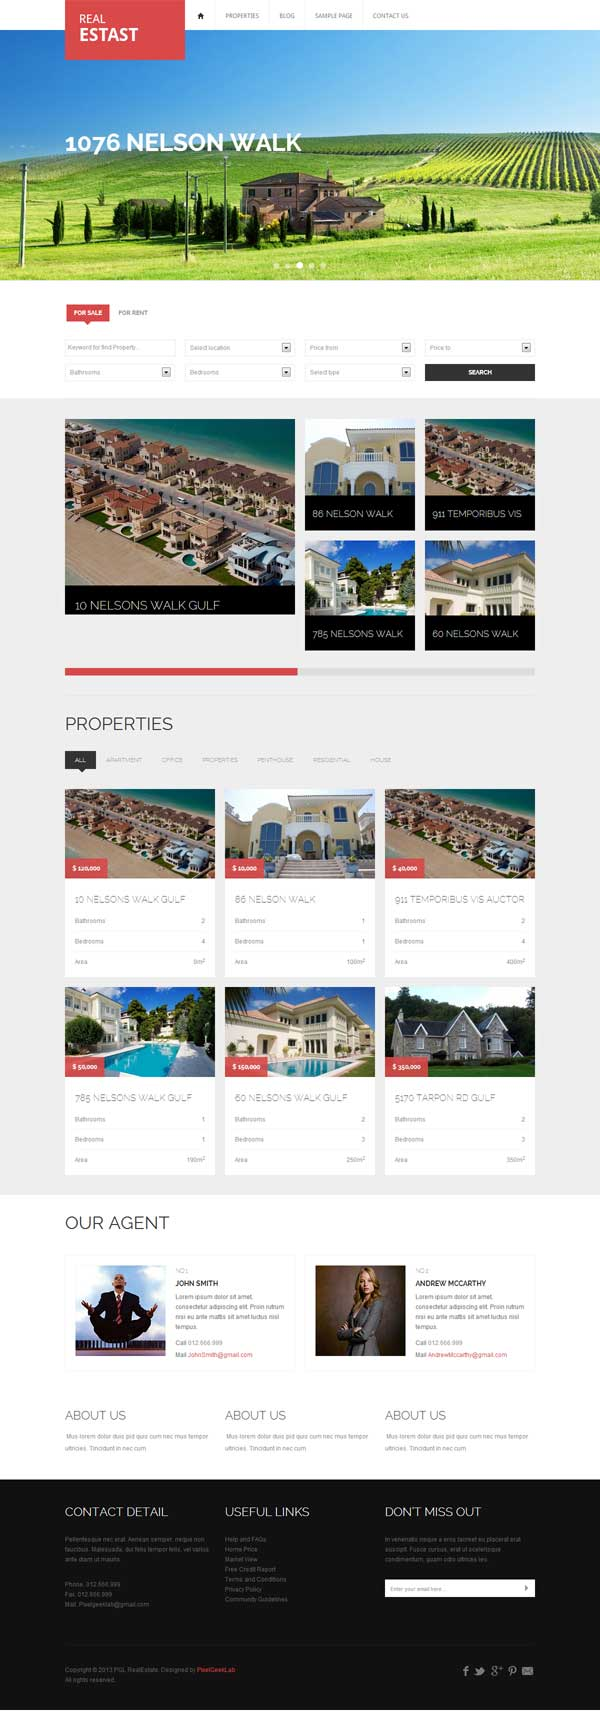 WordPress Theme for Selling Houses